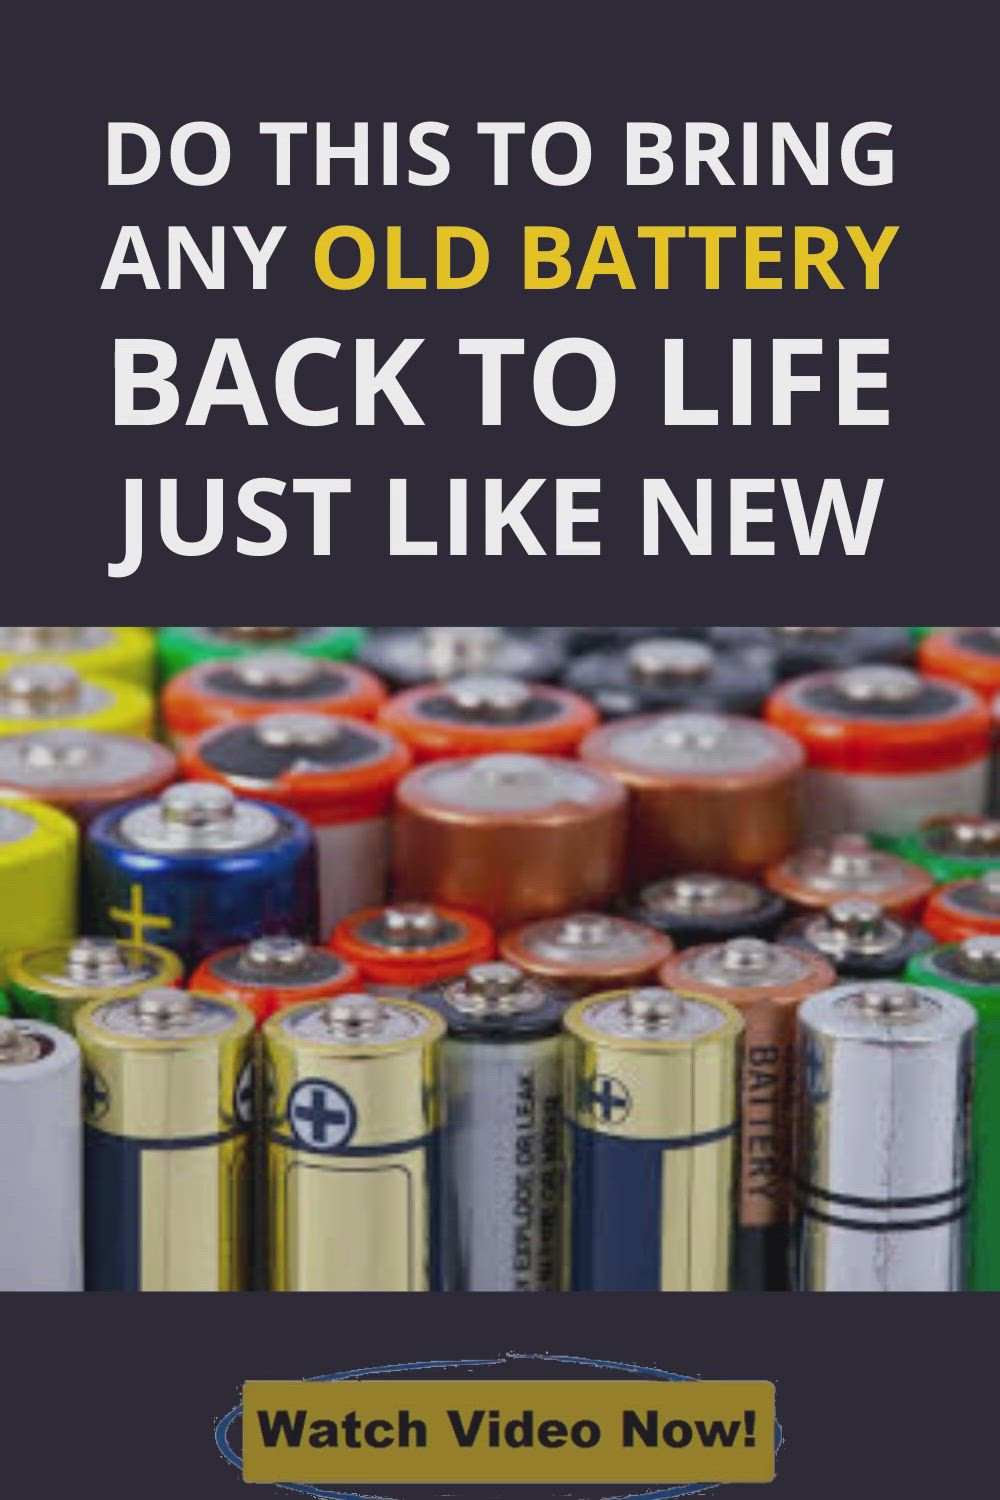 How To Restore A Battery Reconditioning Nicad Batteries Diy Battery Reconditioning Business Video In 2021 Car Battery Charger Ryobi Battery Battery Repair